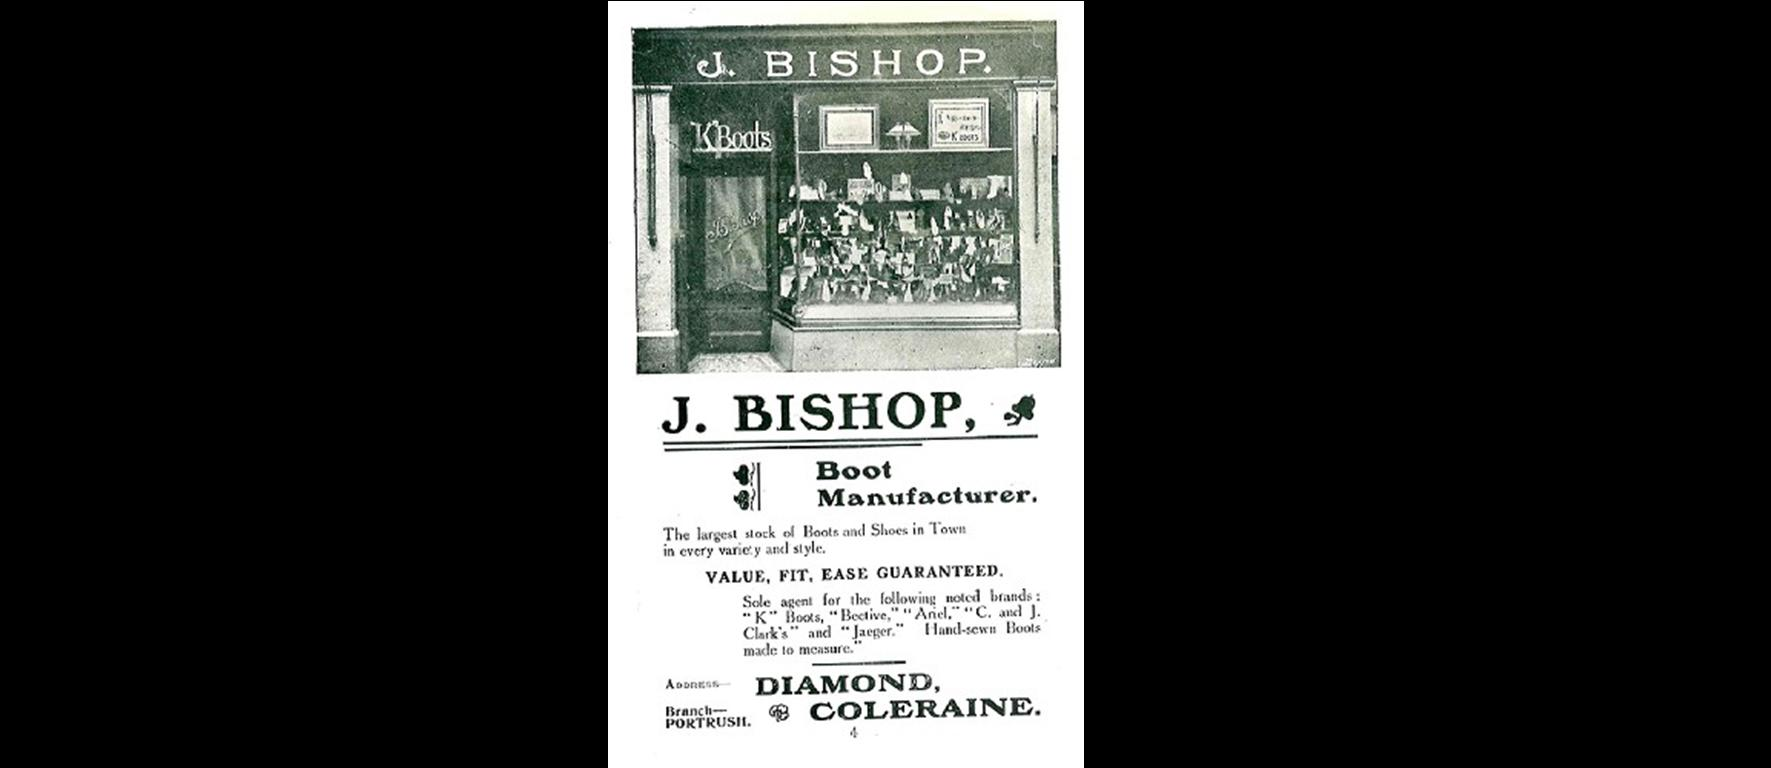 An advert for J. Bishop (James) published in a guide to Coleraine from 1910